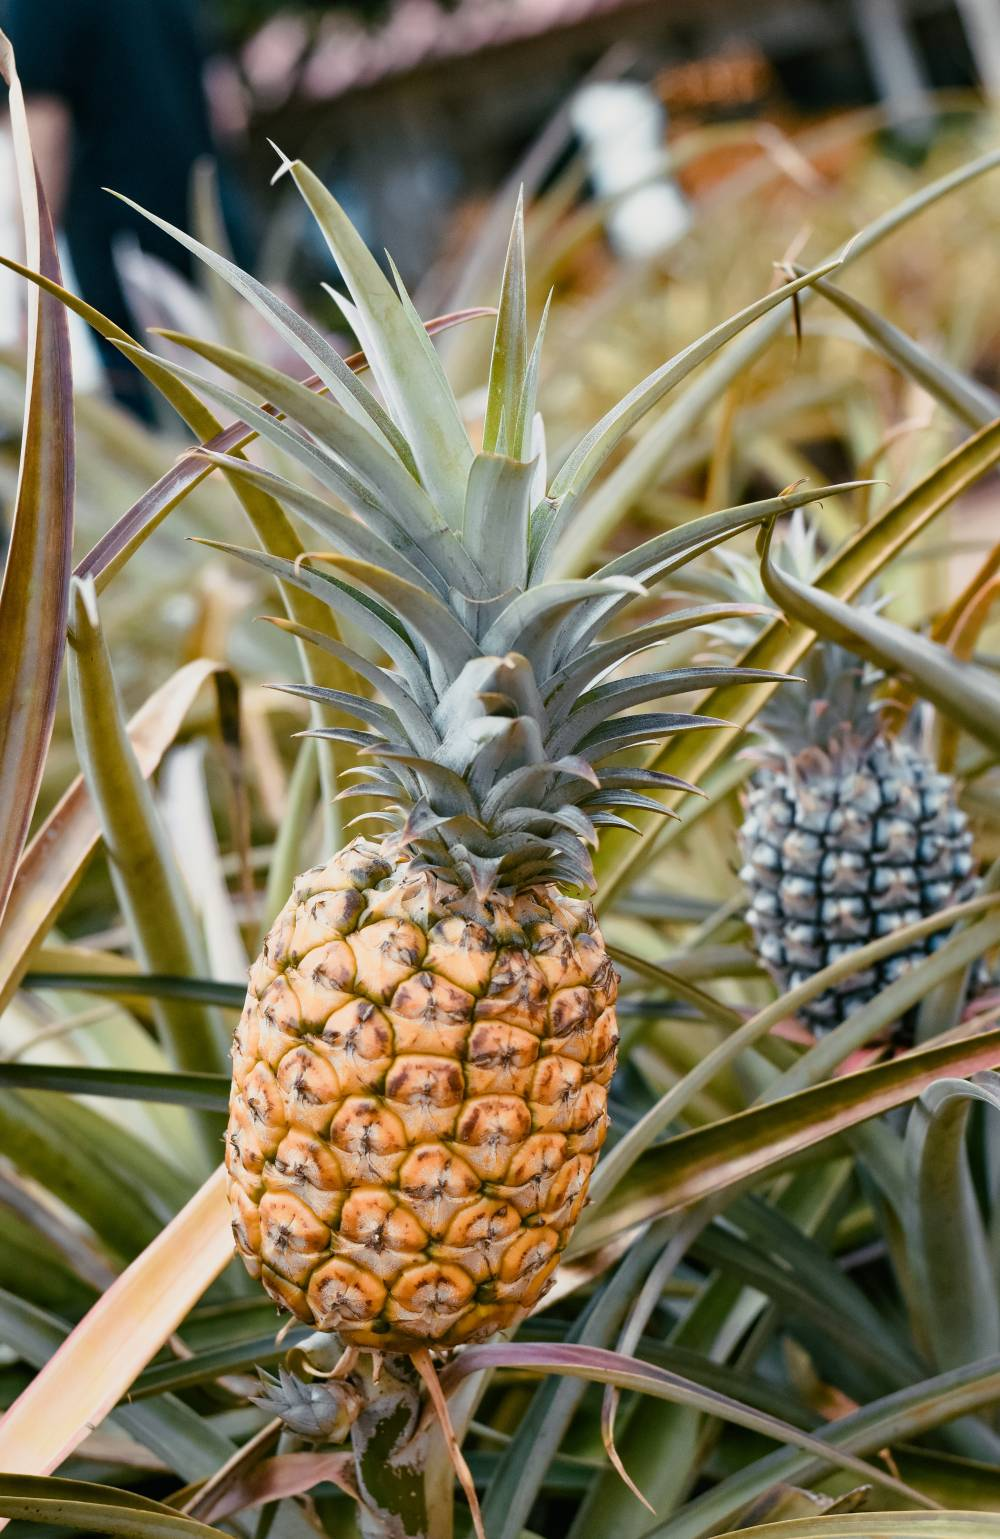 pineapple cultivation plant fruit field